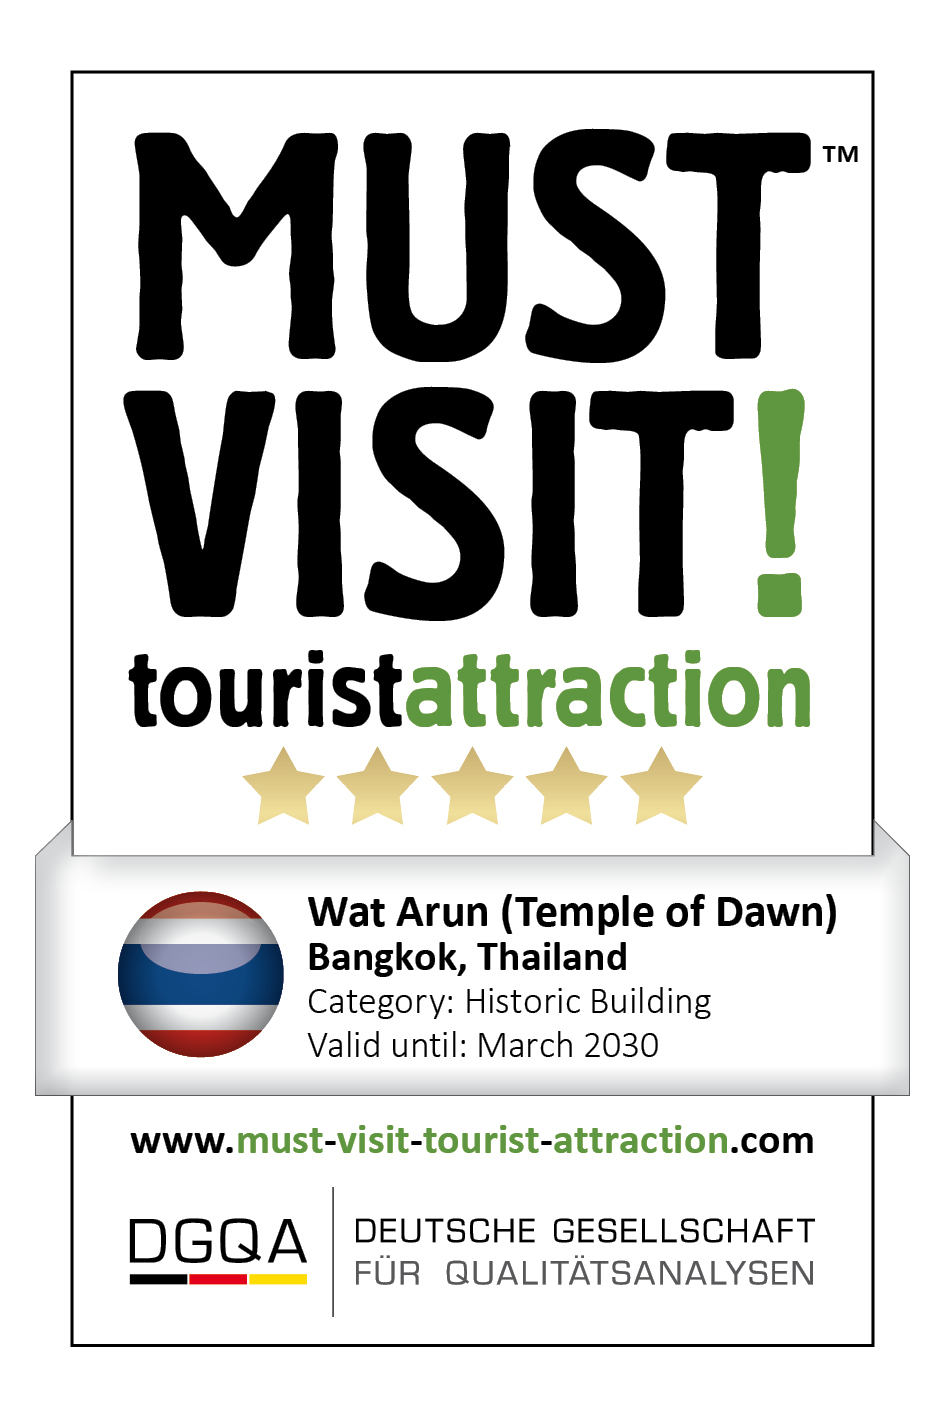 MUST VISIT! tourist attraction (dgqa) wat arun temple of dawn bangkok